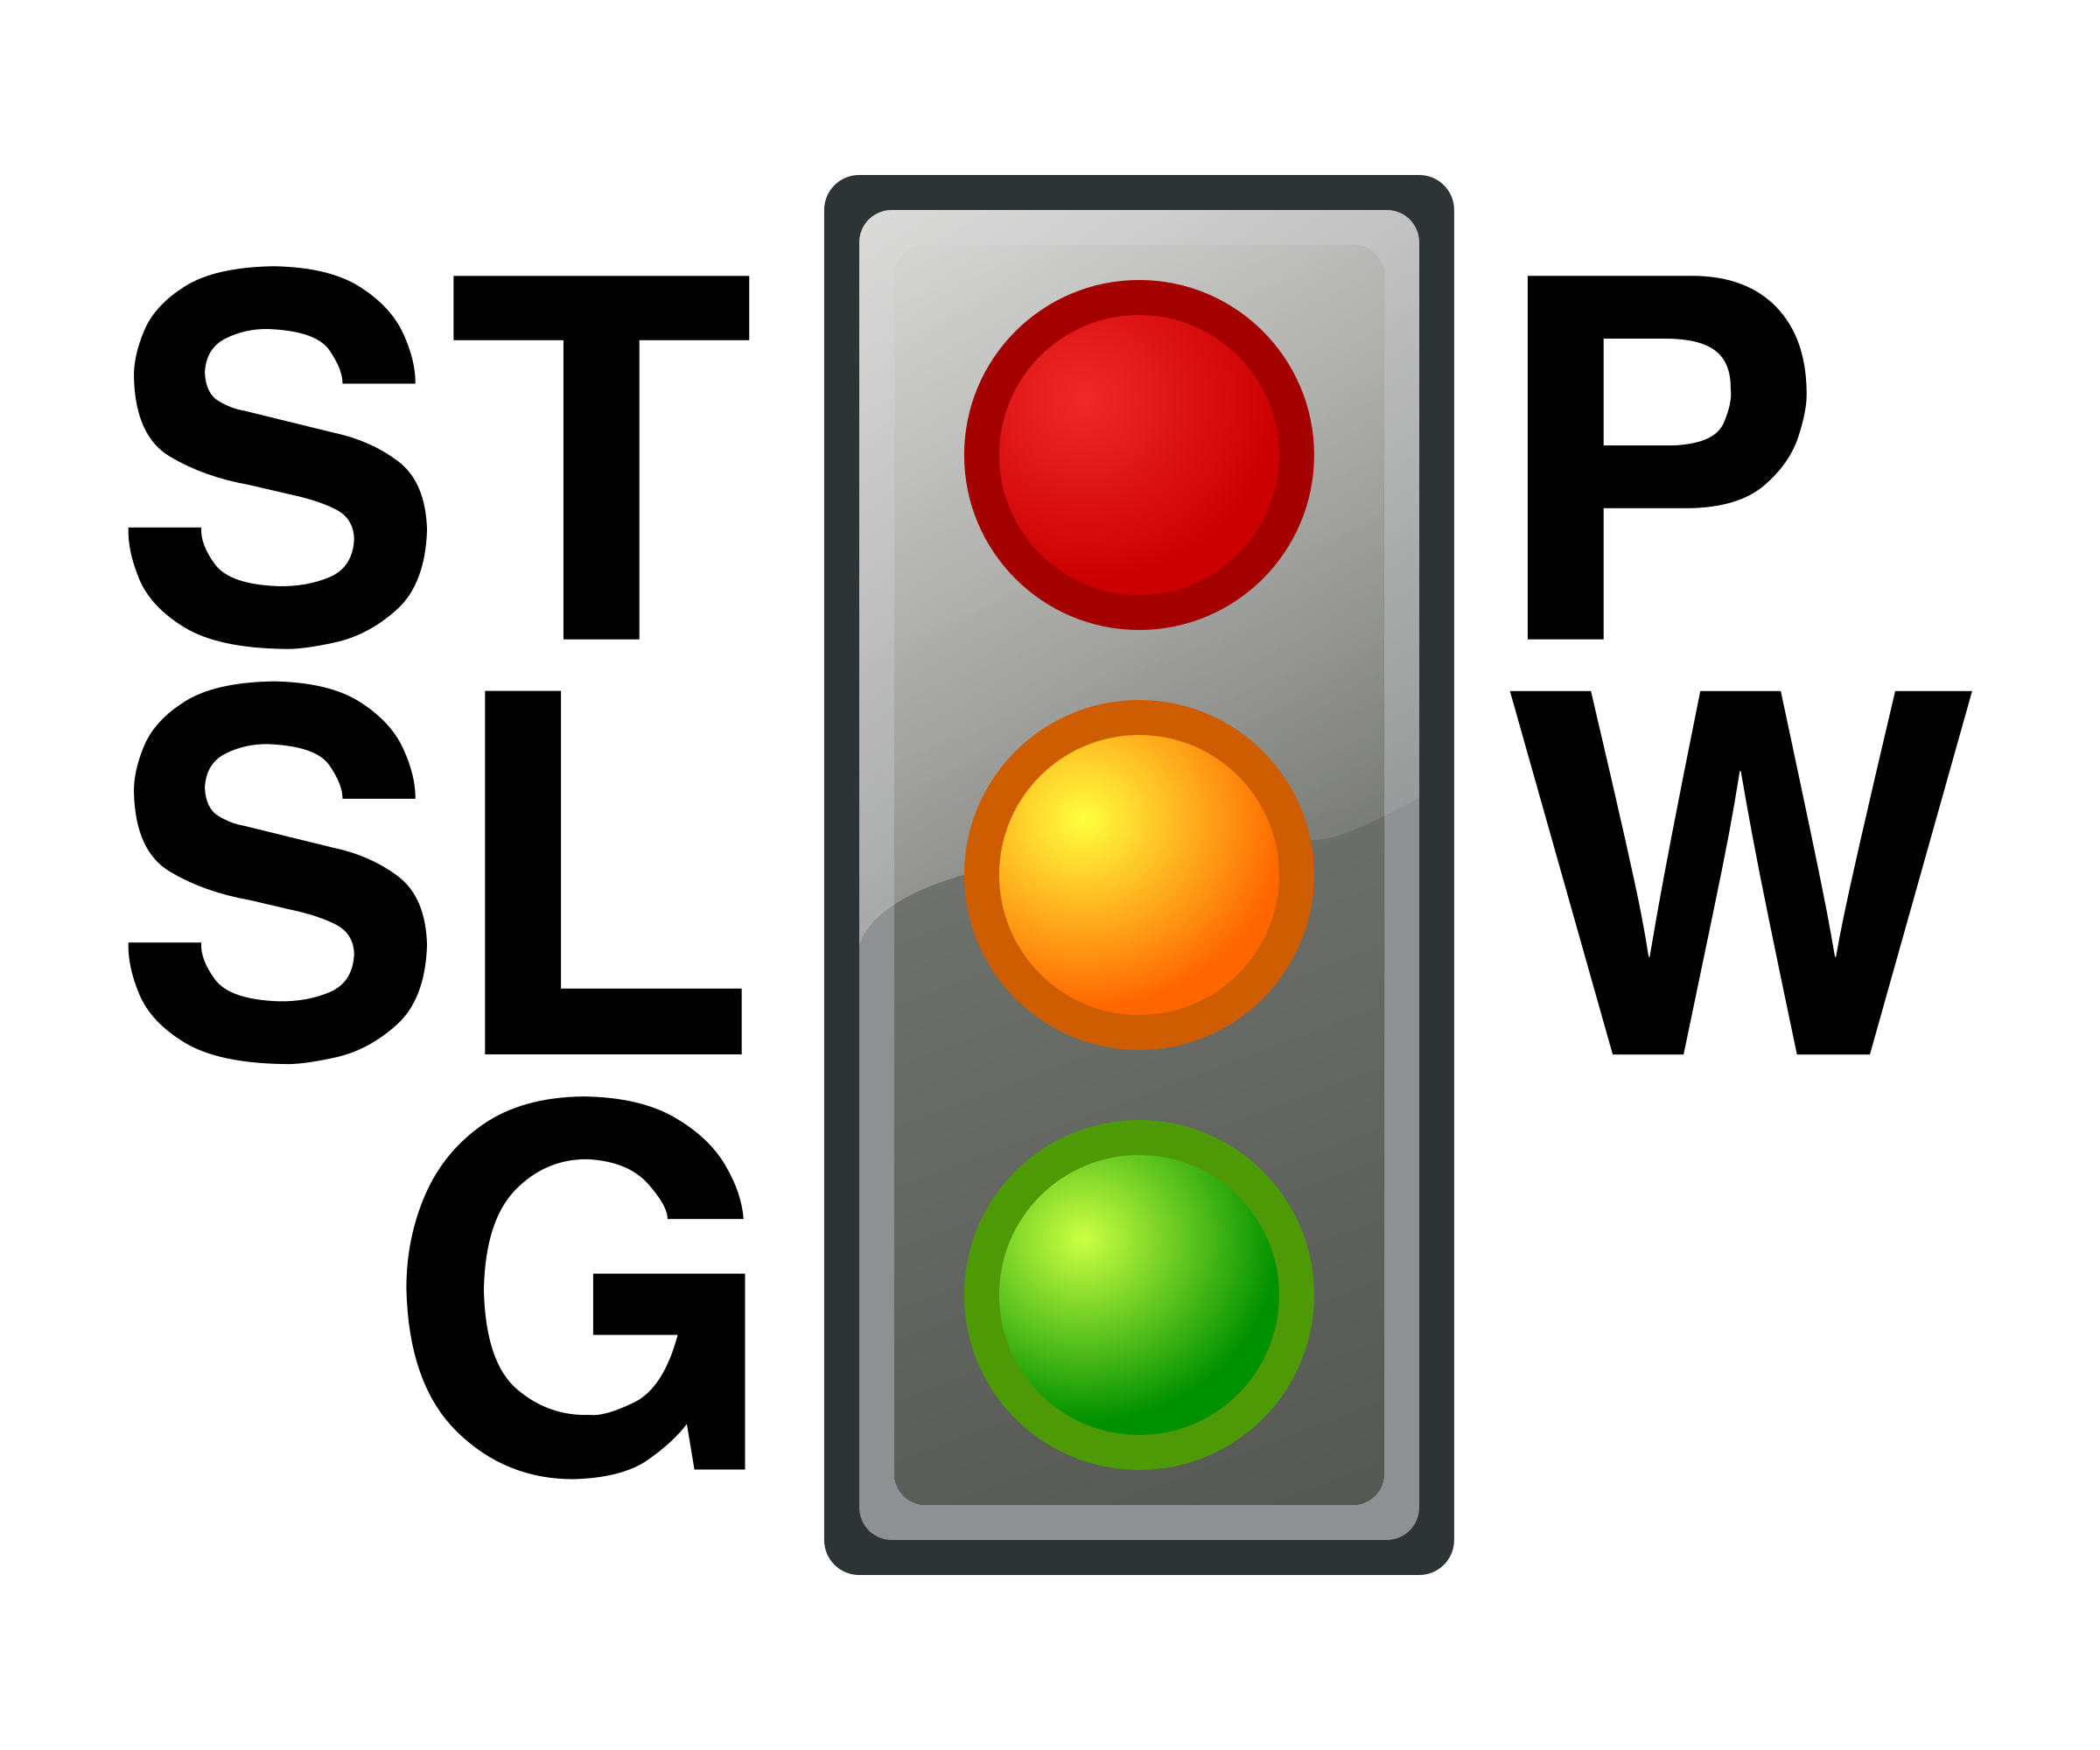 stoplight graphic.png